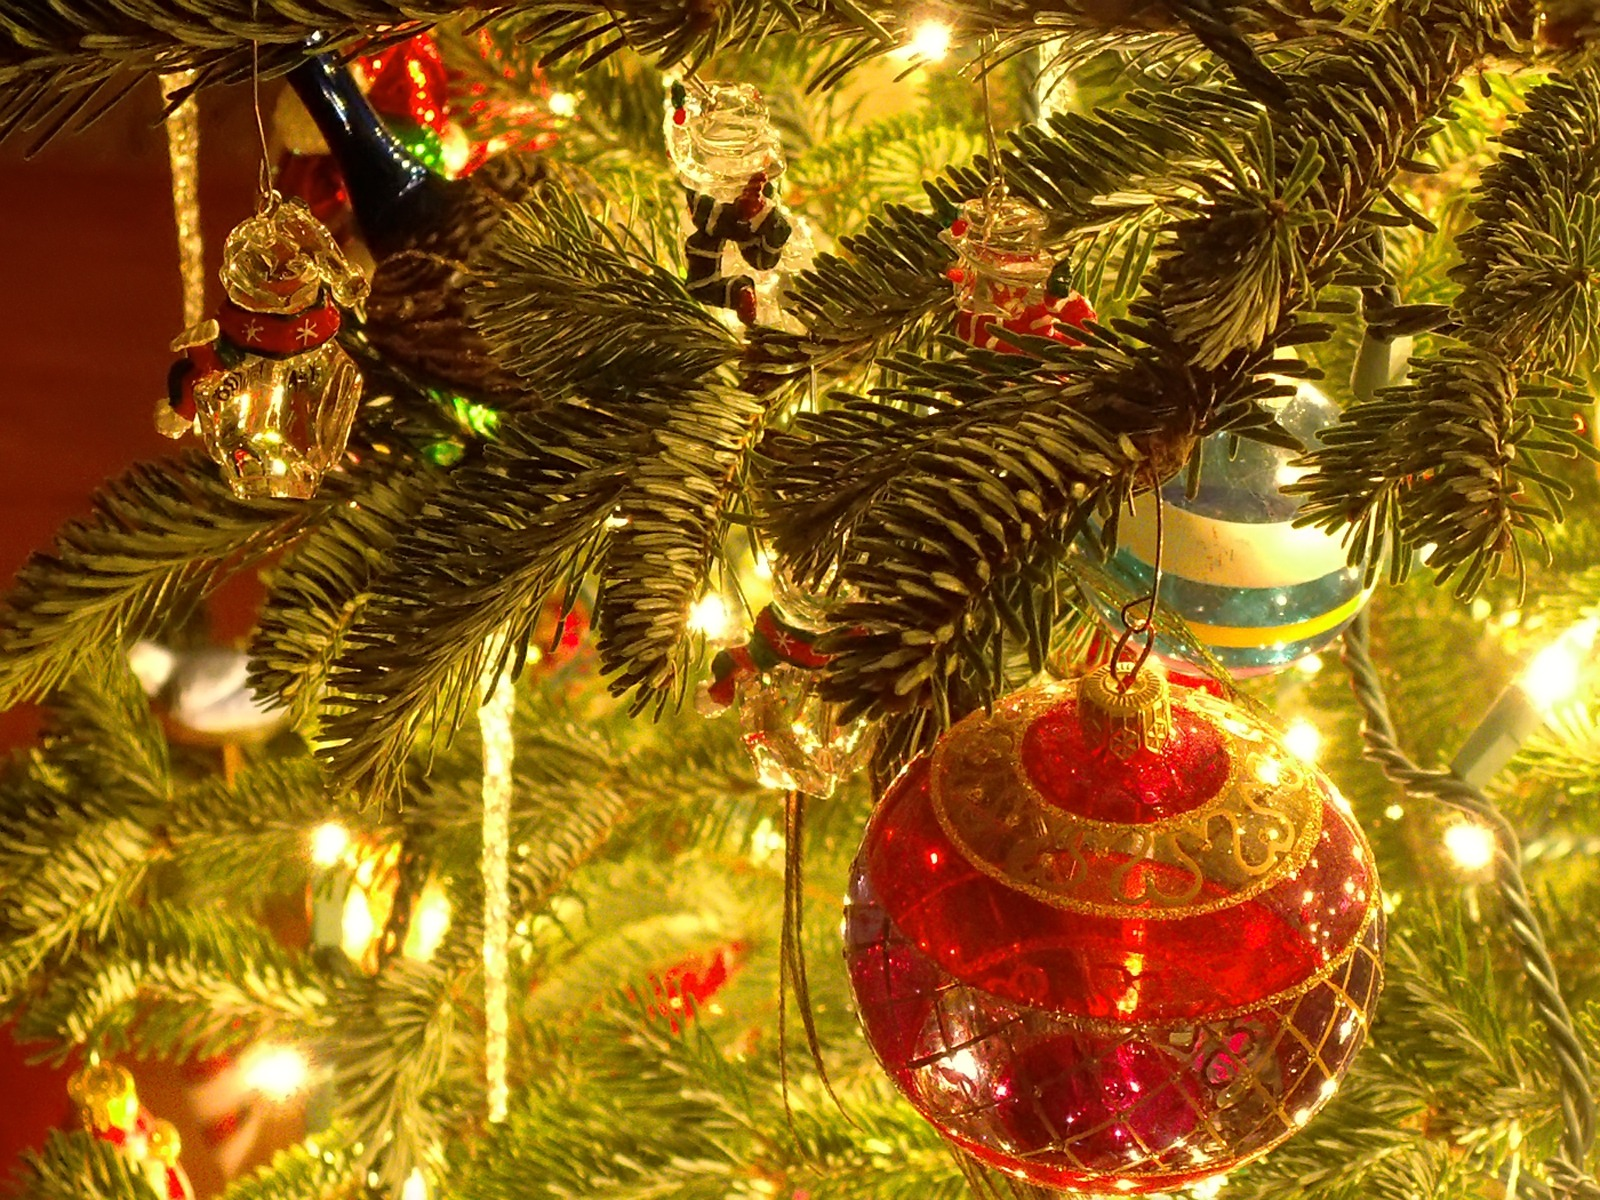 Christmas tree ornaments 1600x1200